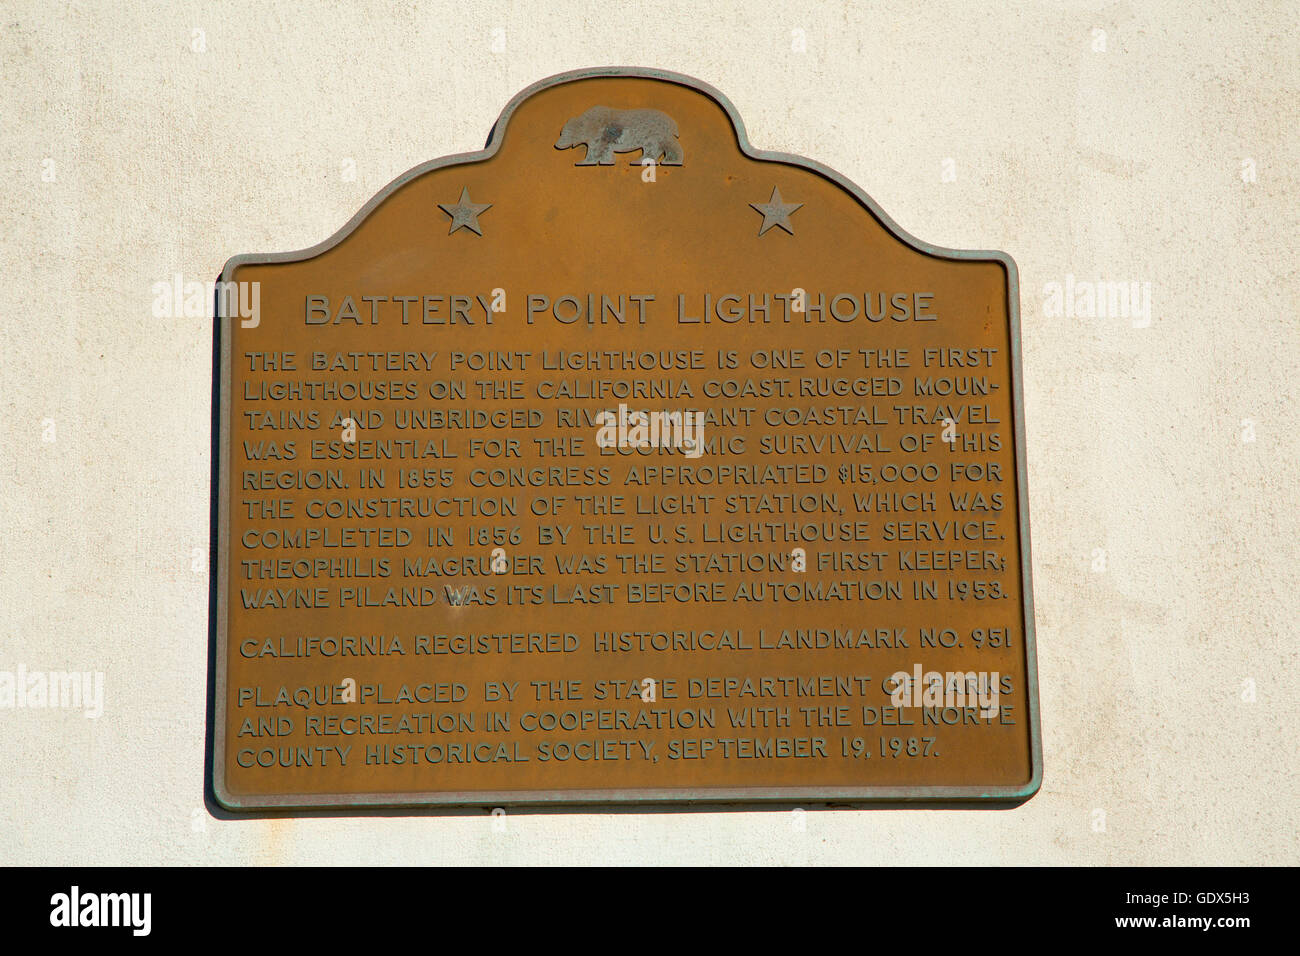 California Historic Landmark Plaque Stock Photos & California ...